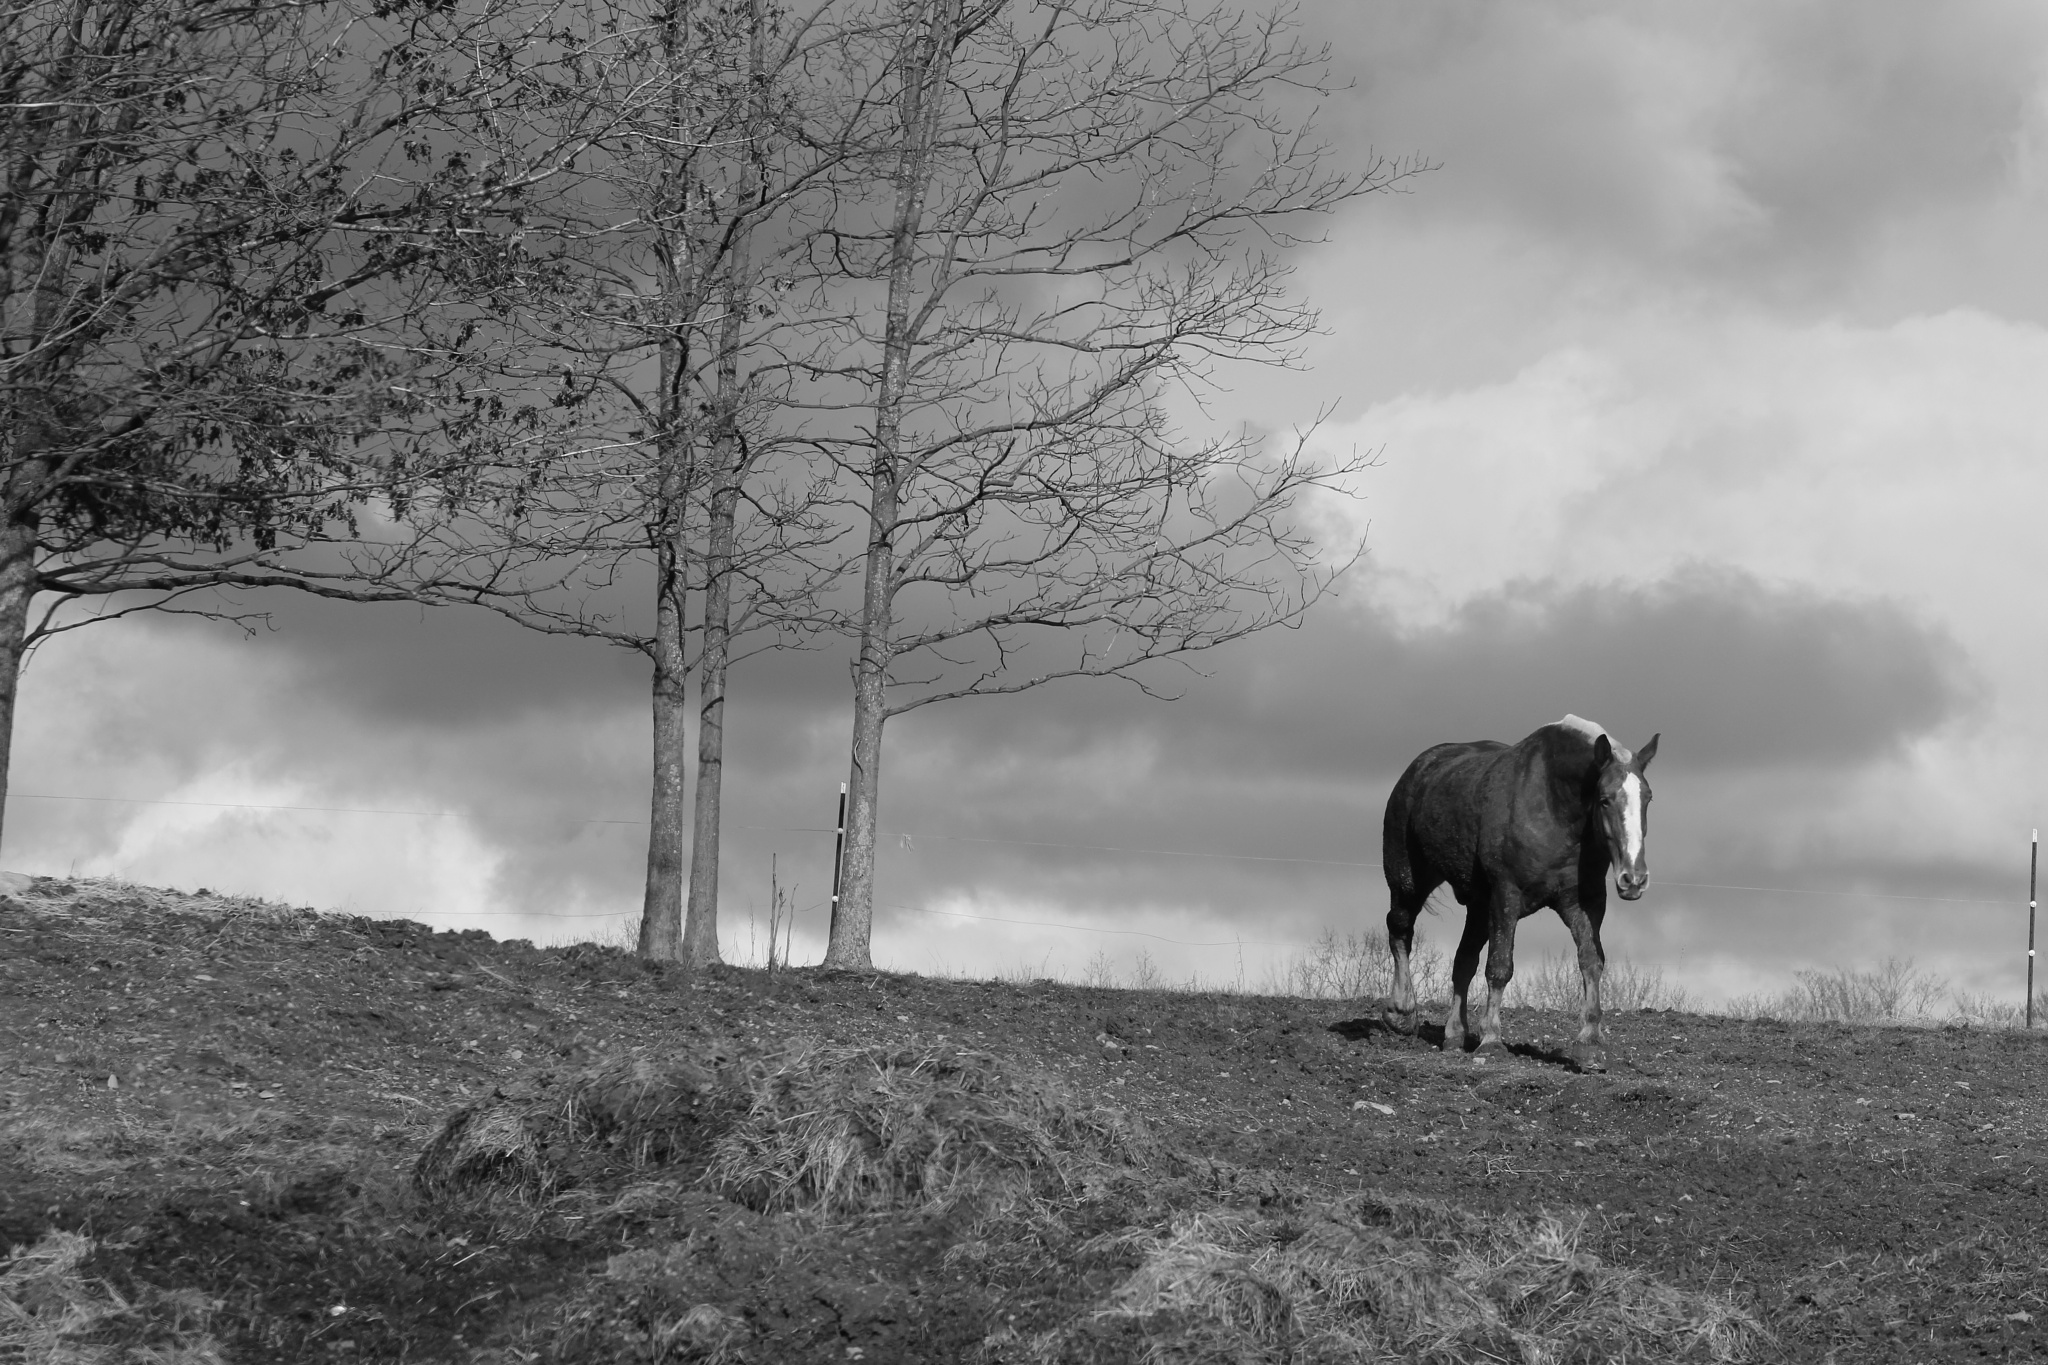 Horse on a Hill by Auggie23